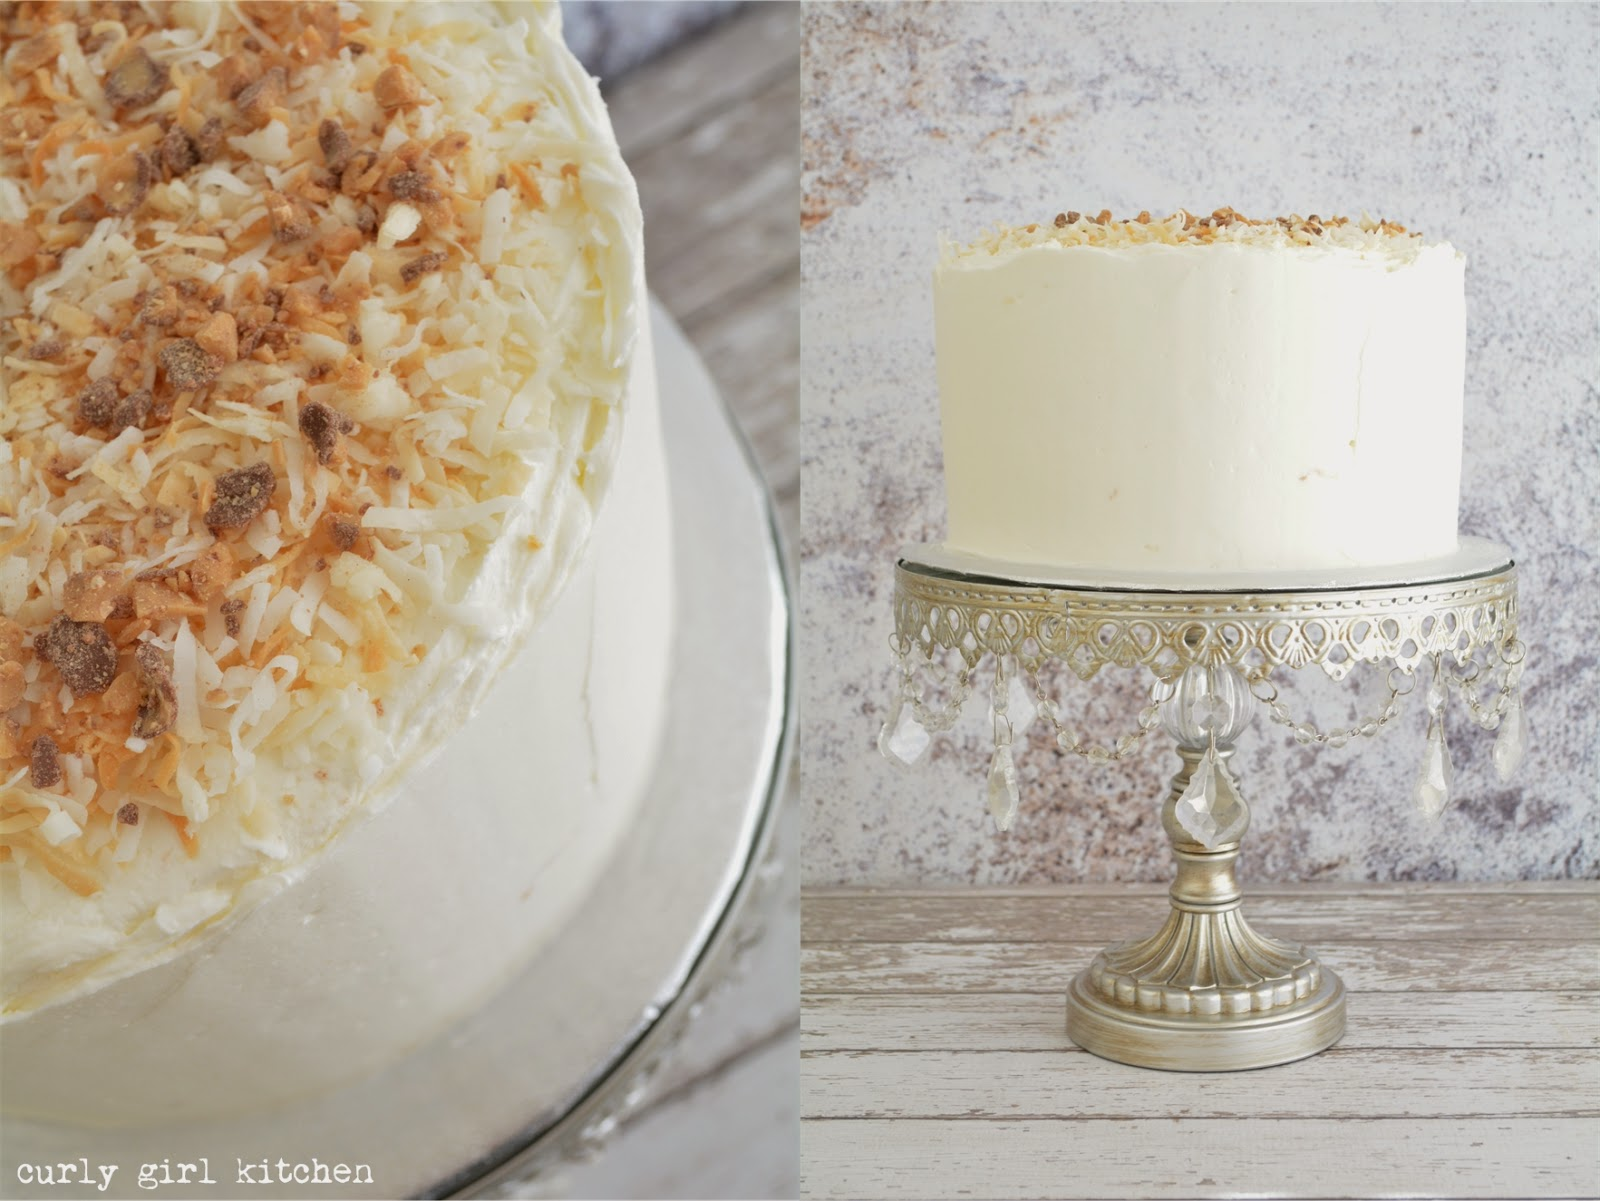 Curly Girl Kitchen: Almond Cake with Banana Cream Filling